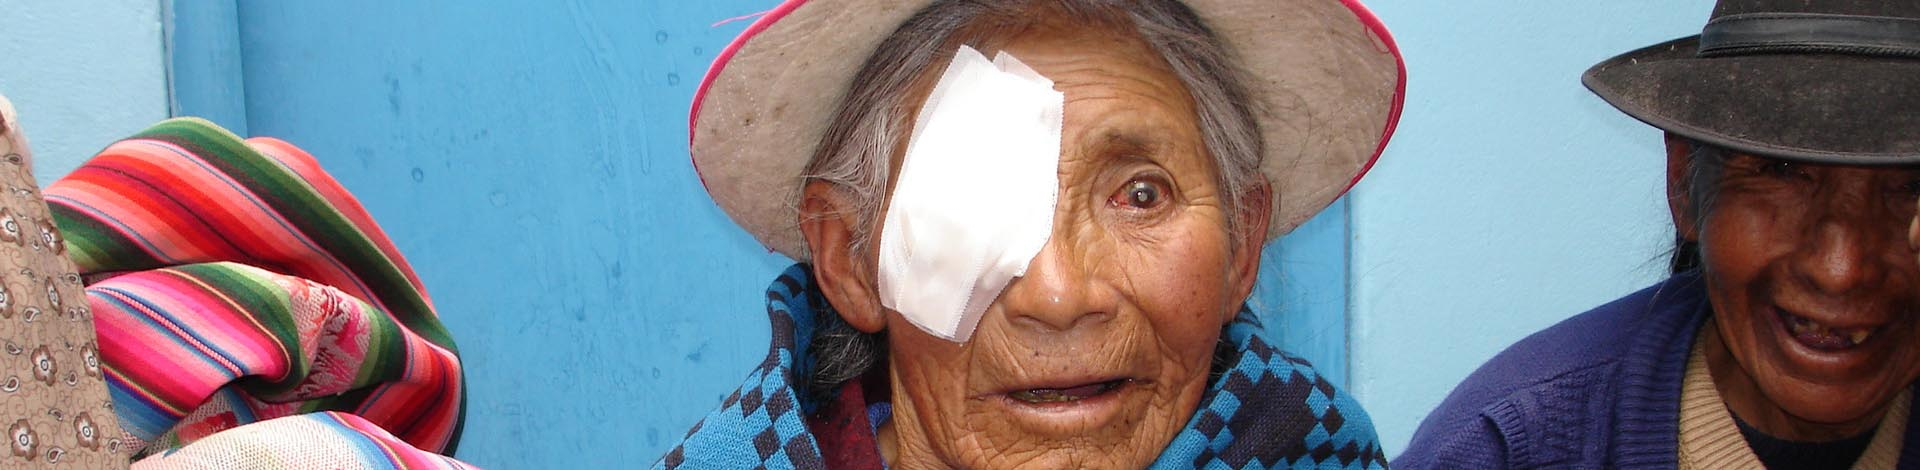 Benita smiling after surgery for cataracts.